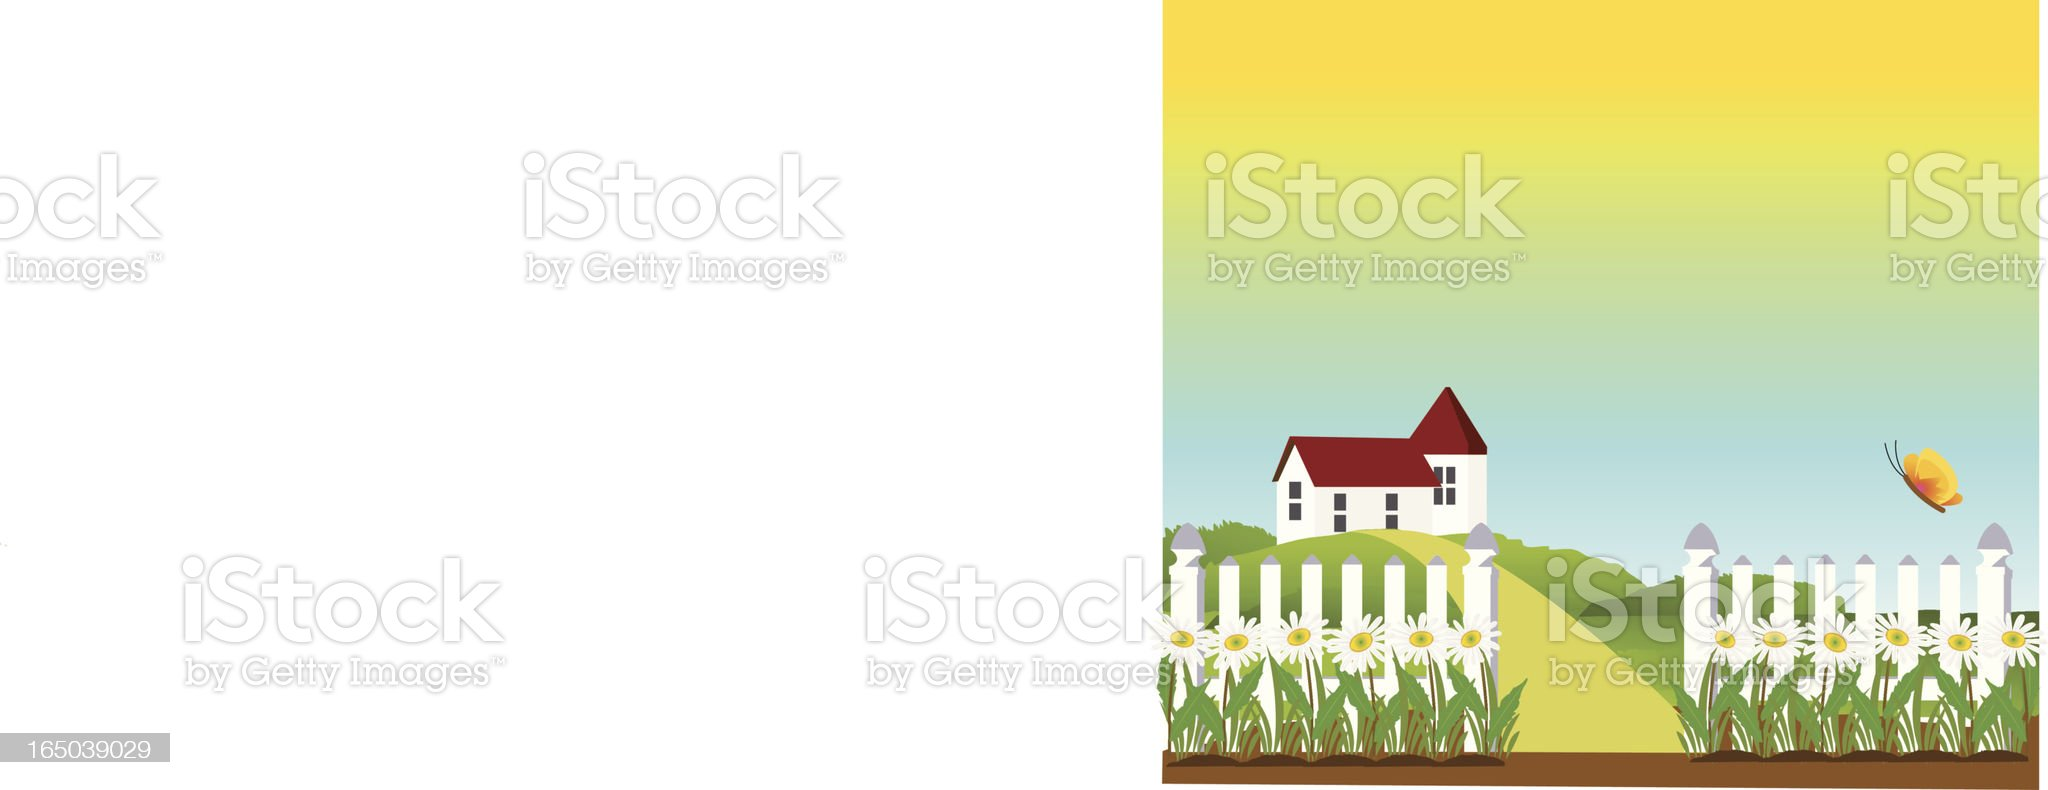 outdoor - picket fence in the village royalty-free stock vector art